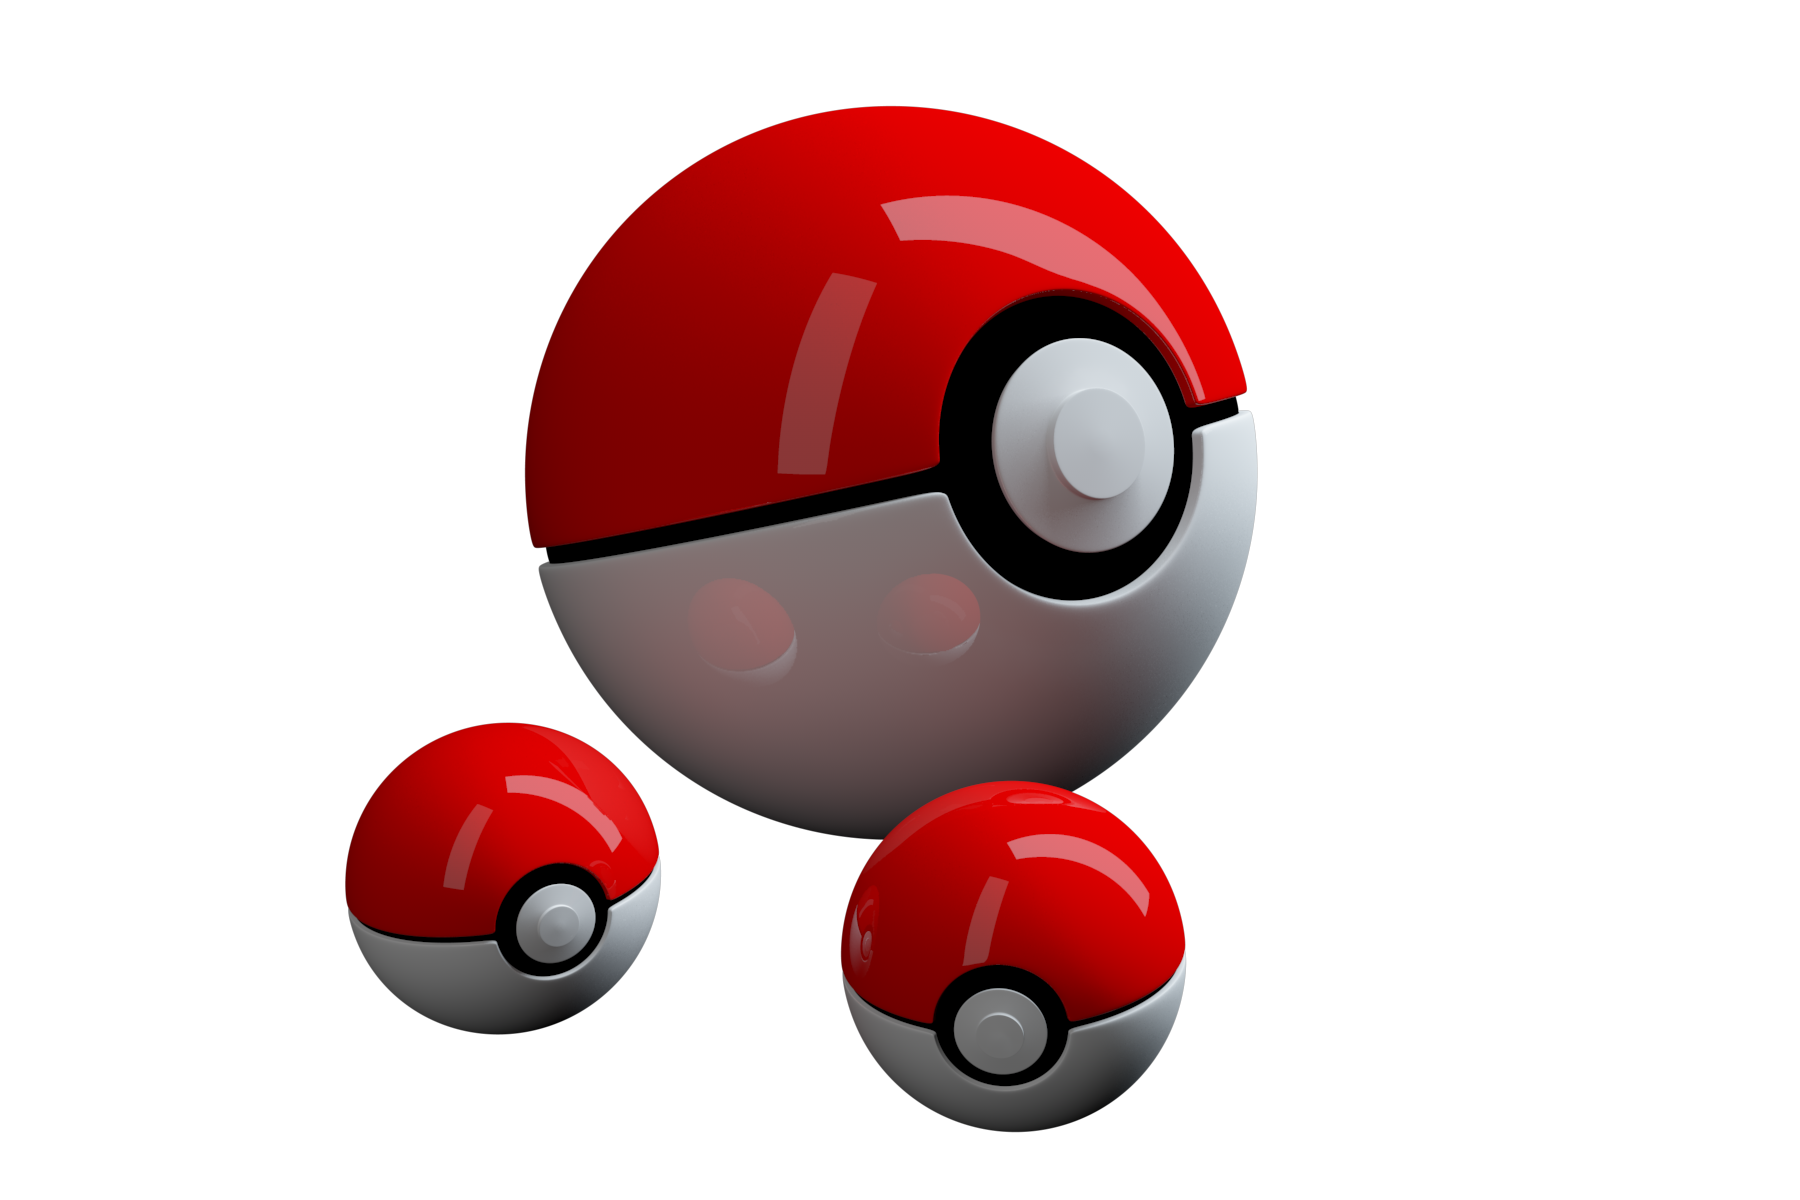 Png image purepng free. Pokeball clipart high resolution